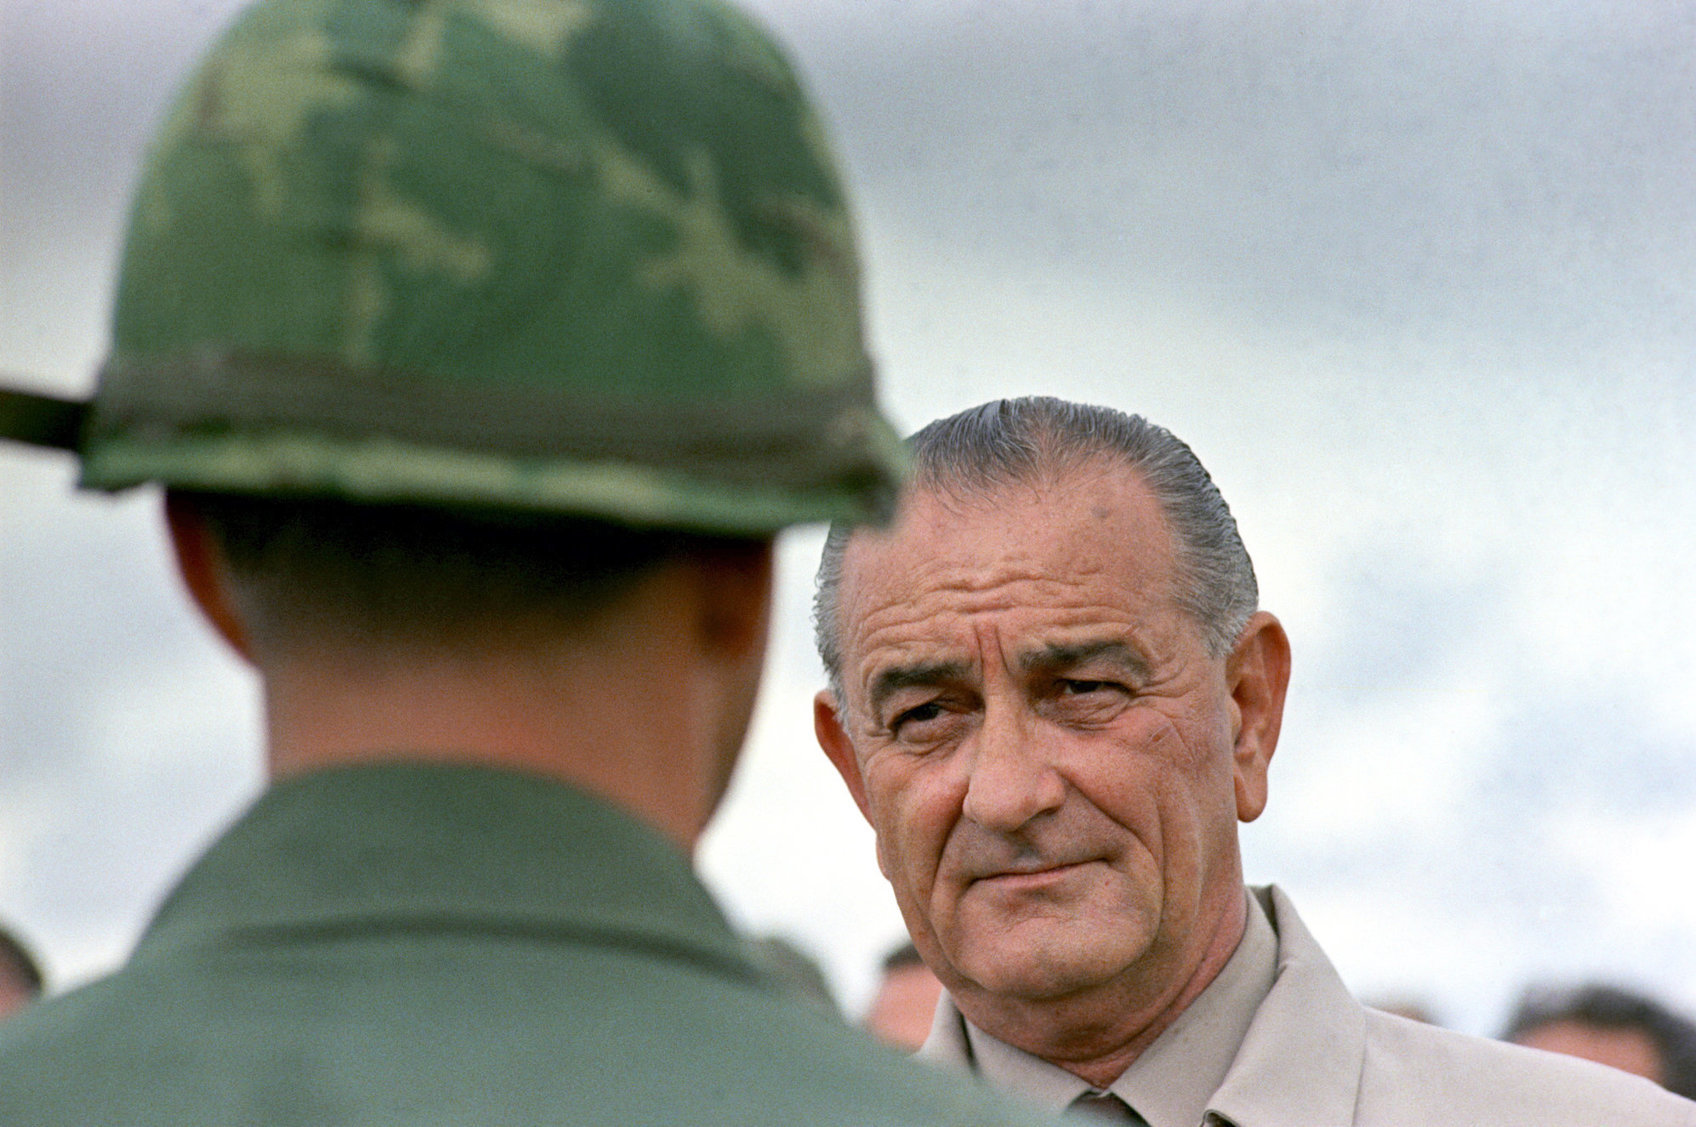 johnson vietnam war Lyndon baines johnson (/ˈlɪndən ˈbeɪnz ˈdʒɒnsən/ august 27, 1908 – january 22, 1973), often referred to as lbj, was the 36th president of the united states (1963–1969), a position he assumed after his service as the 37th vice president of the united states(1961–1963.